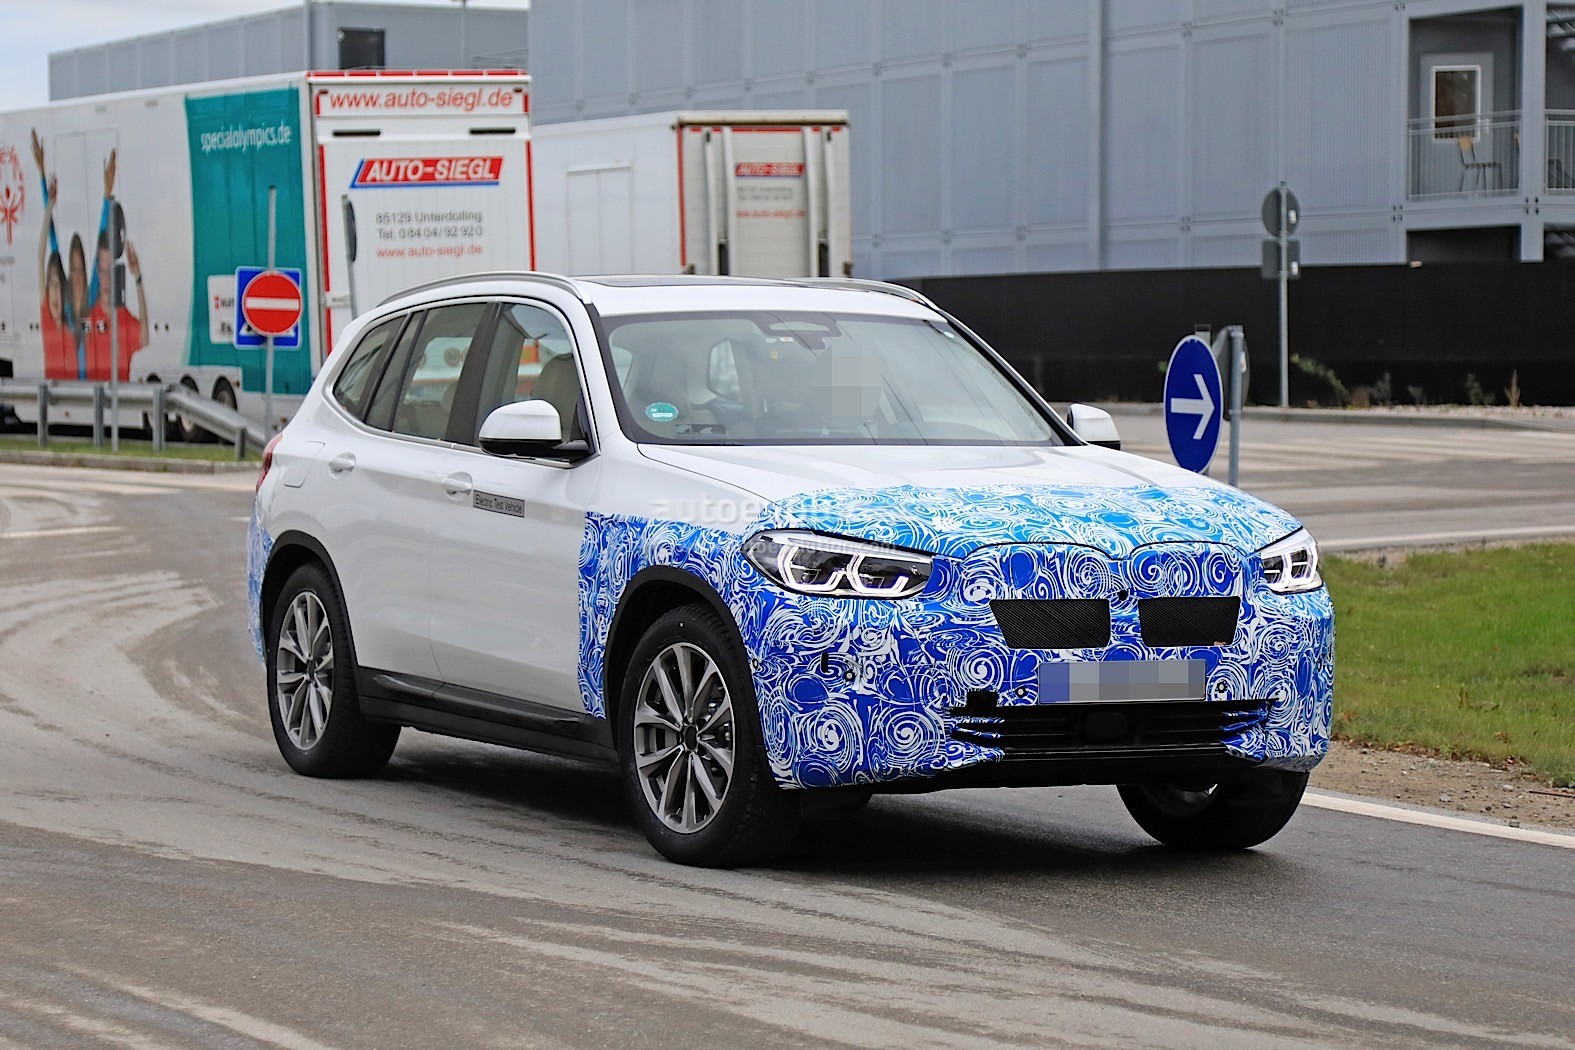 2016 - [BMW] X3 [G01] - Page 11 2020-bmw-ix3-shows-all-angles-in-new-spyshots_27